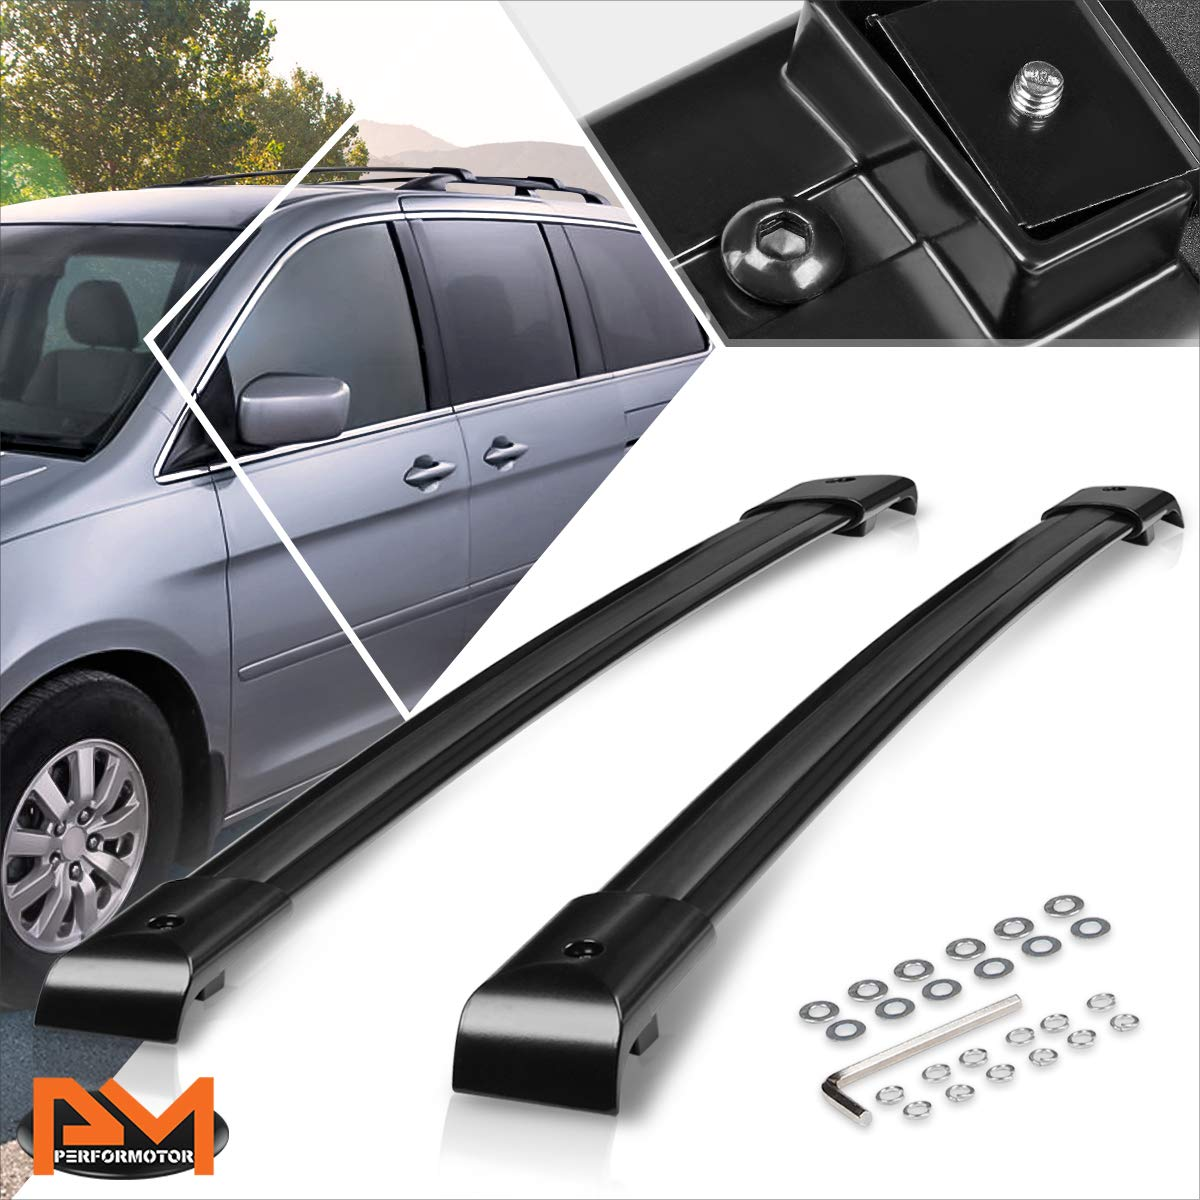 compatible with honda odyssey 05 10 oe style aluminum roof top rail rack crossbar luggage carrier